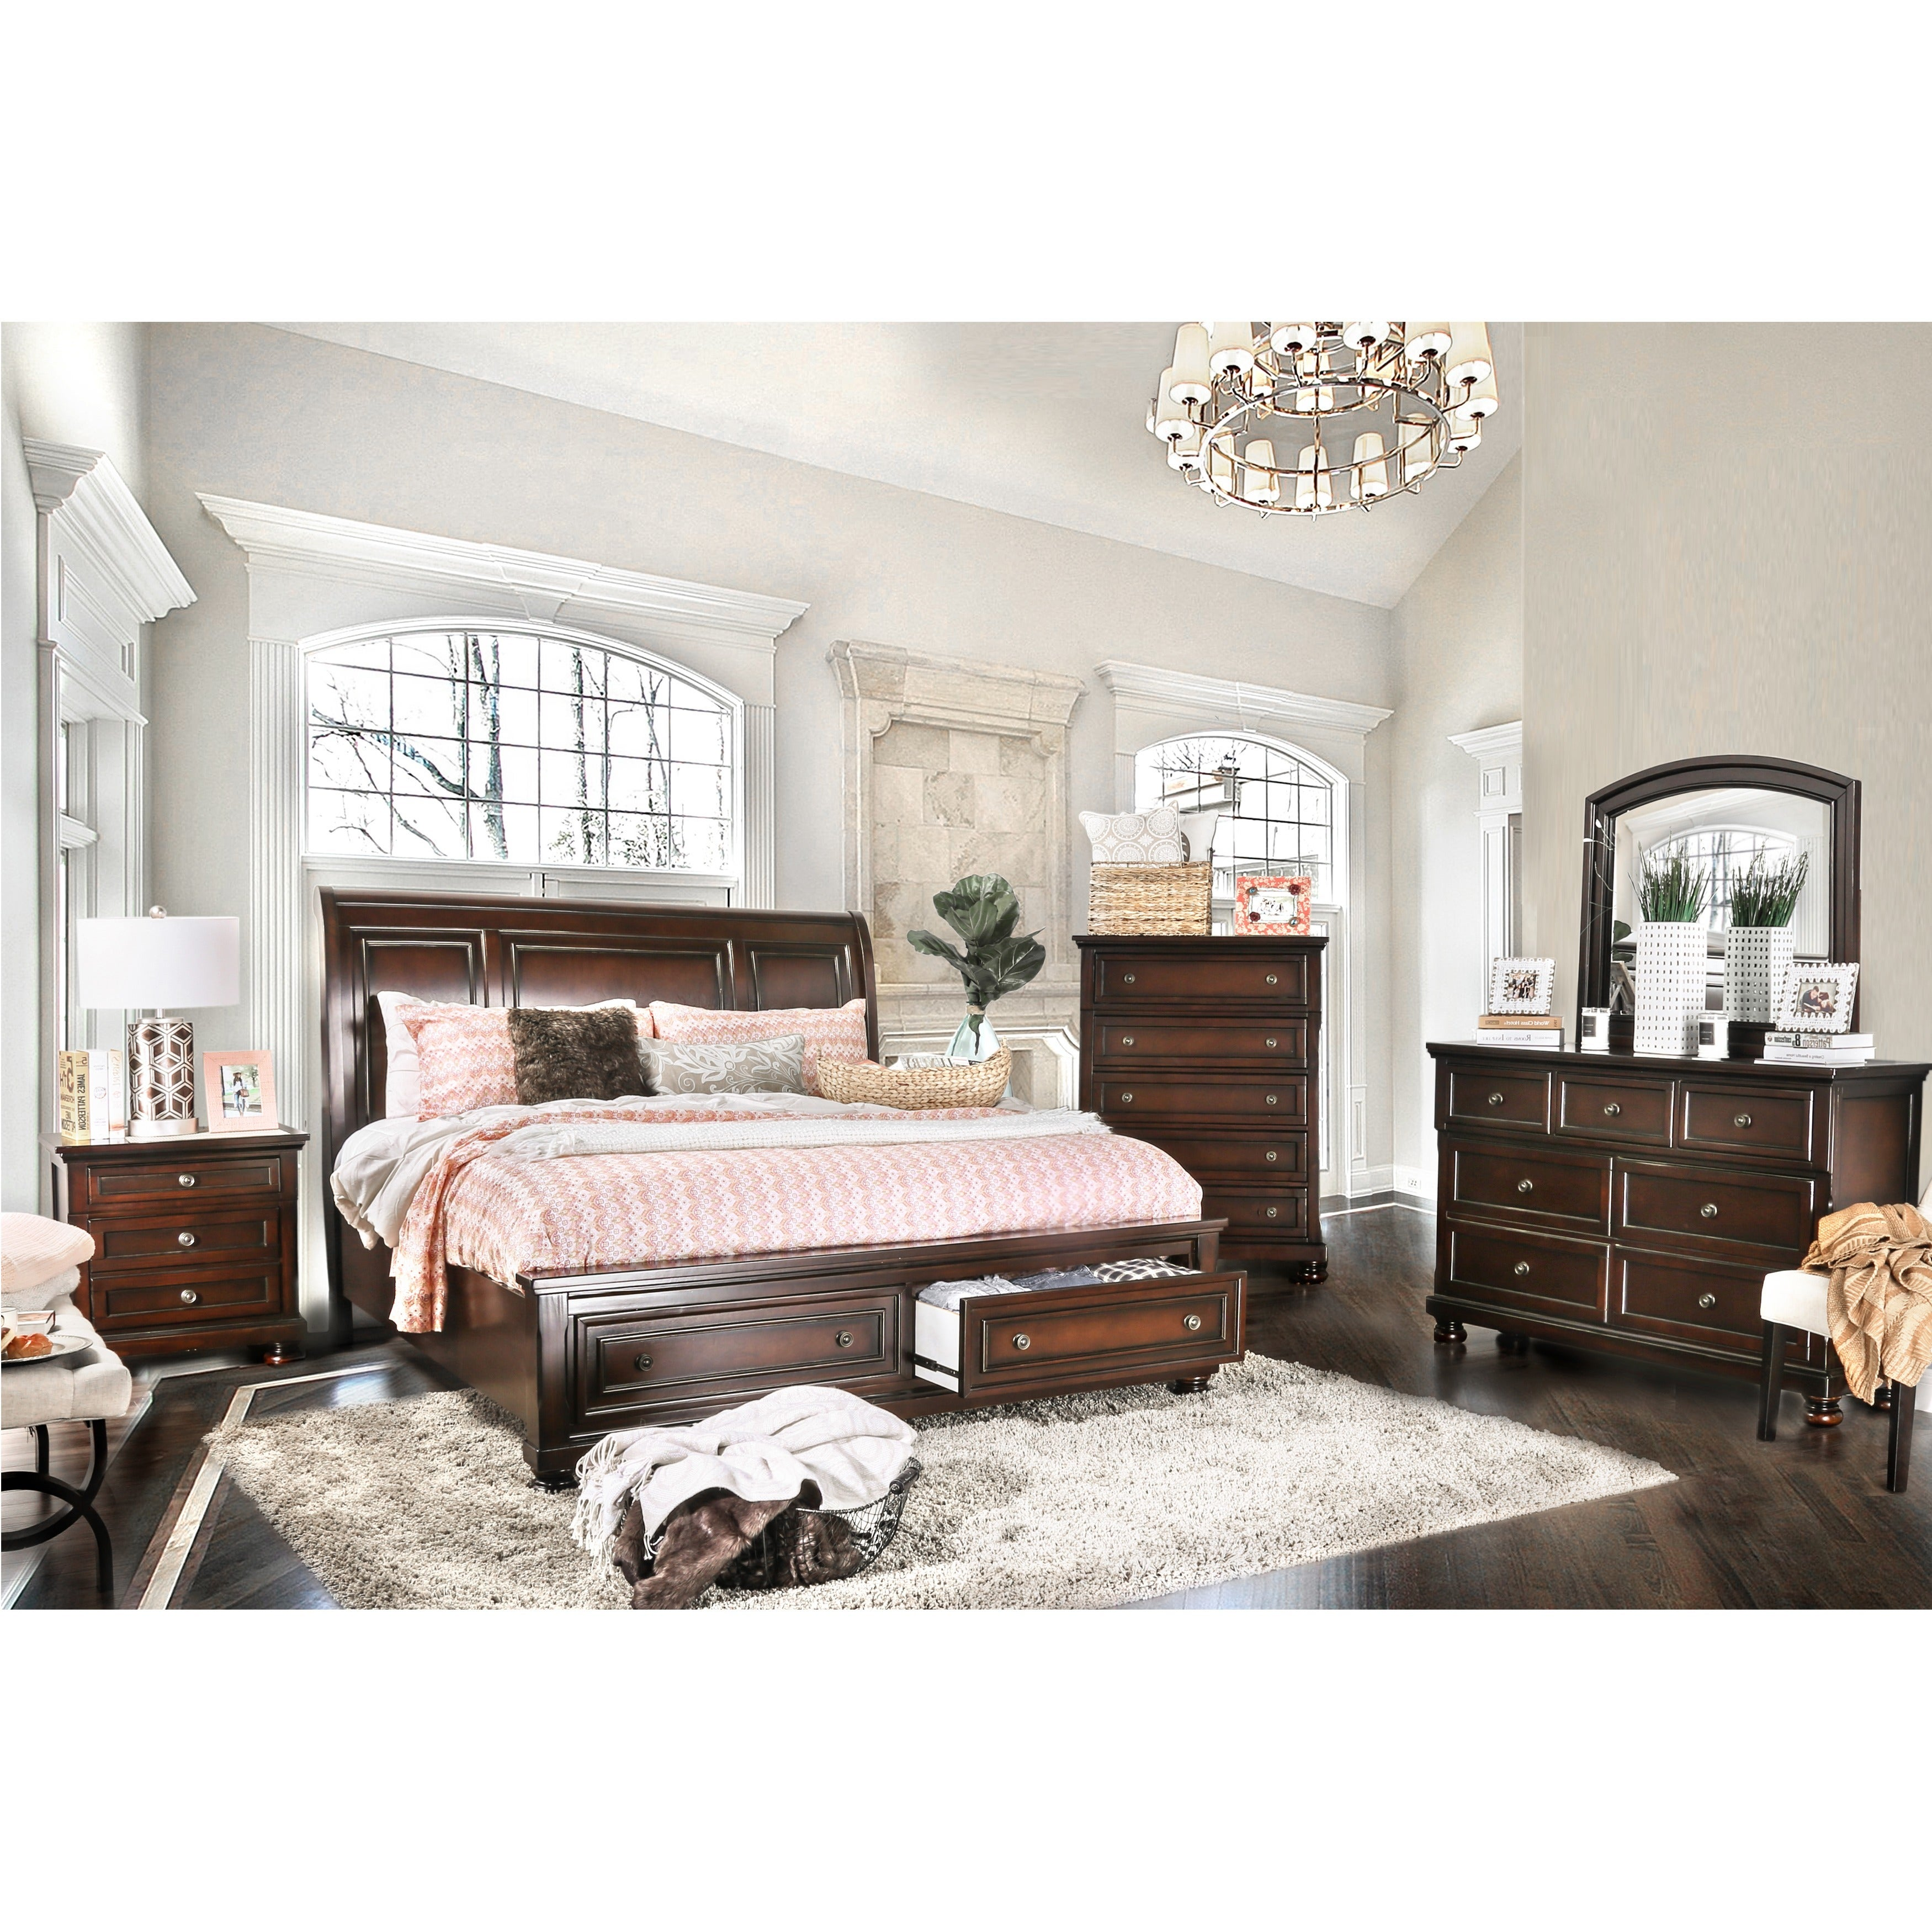 Bfsbpit50 Bedroom Furniture Set By Patio In Tampa Today 2021 02 22 Download Here